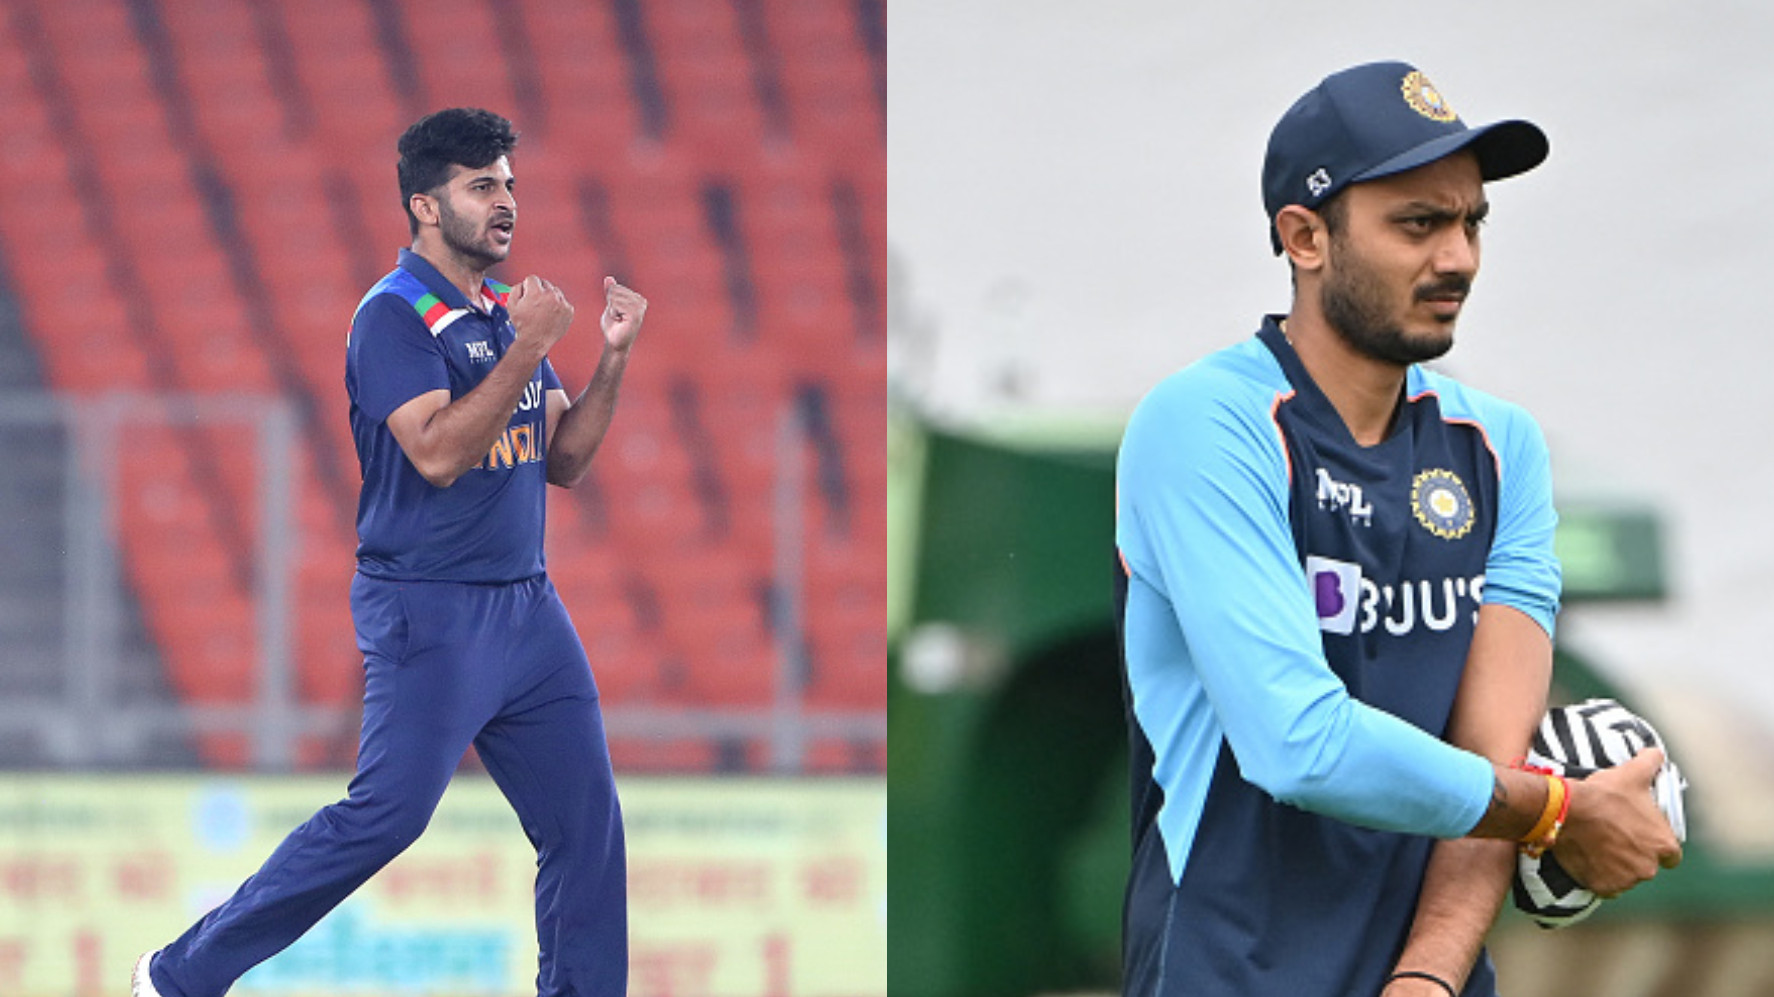 Shardul Thakur replaces Akshar Patel in Indian T20 World Cup 2021 squad